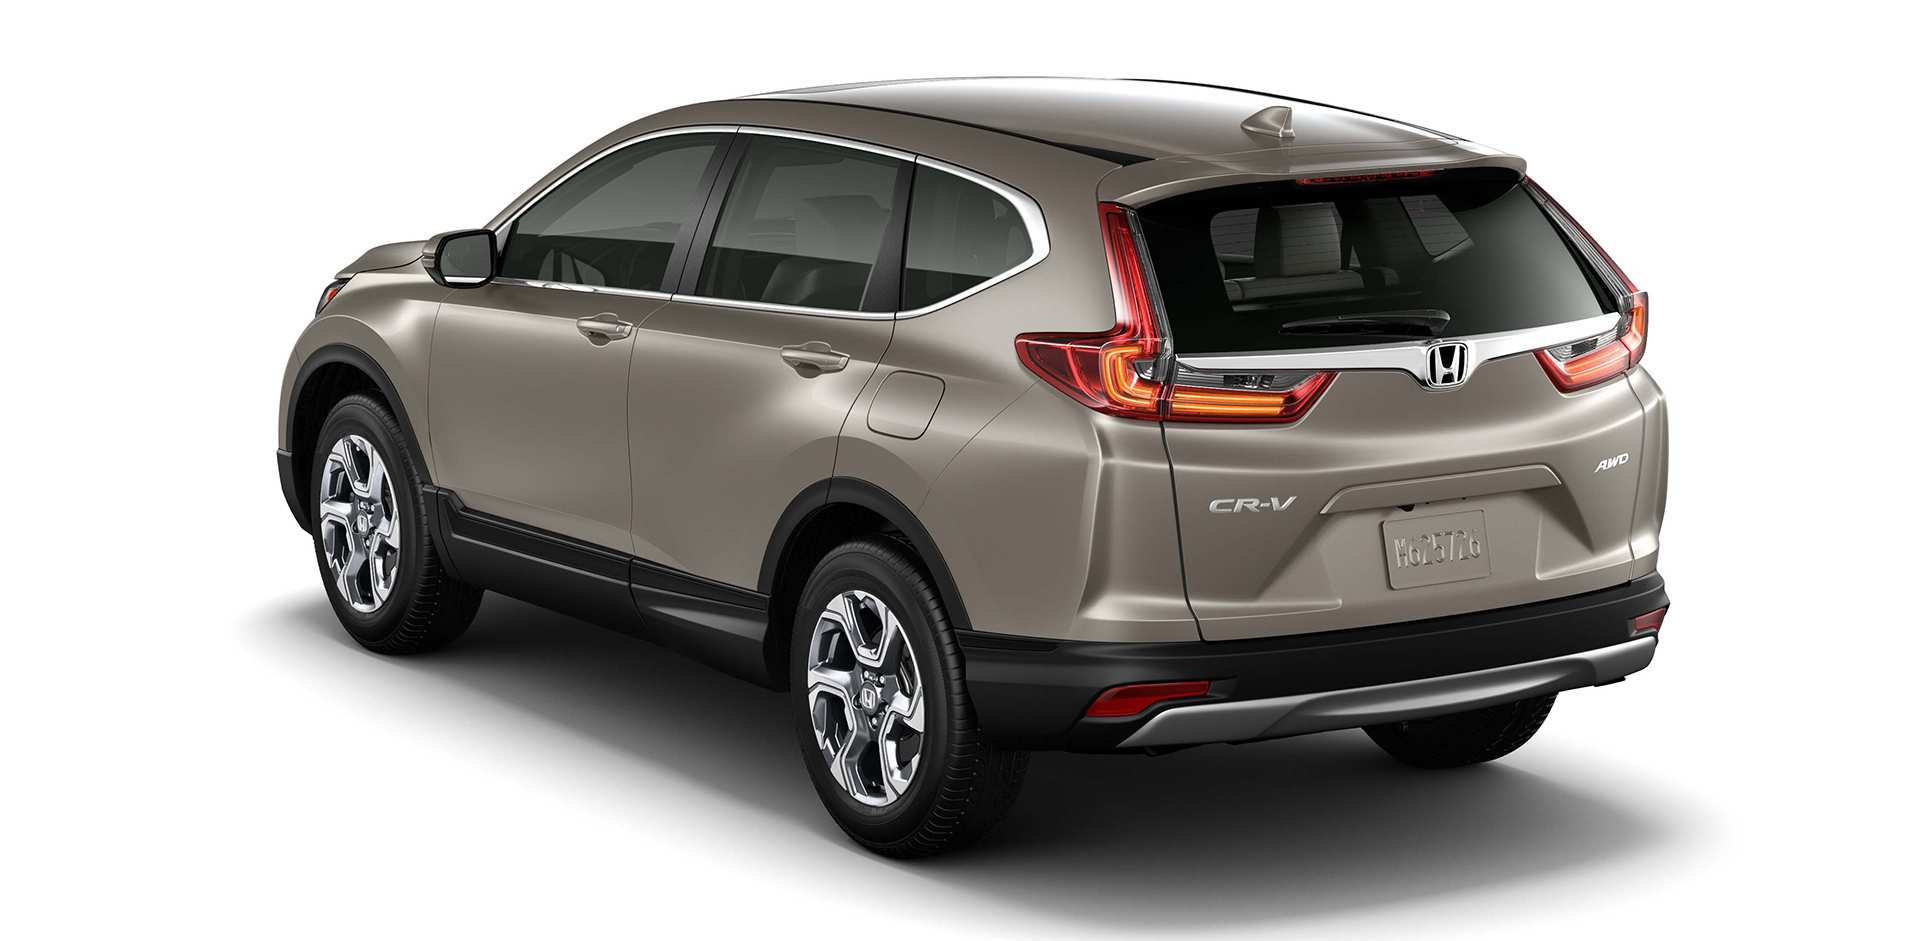 37 New Best Honda Crv 2019 Price In Qatar Review And Price Speed Test by Best Honda Crv 2019 Price In Qatar Review And Price